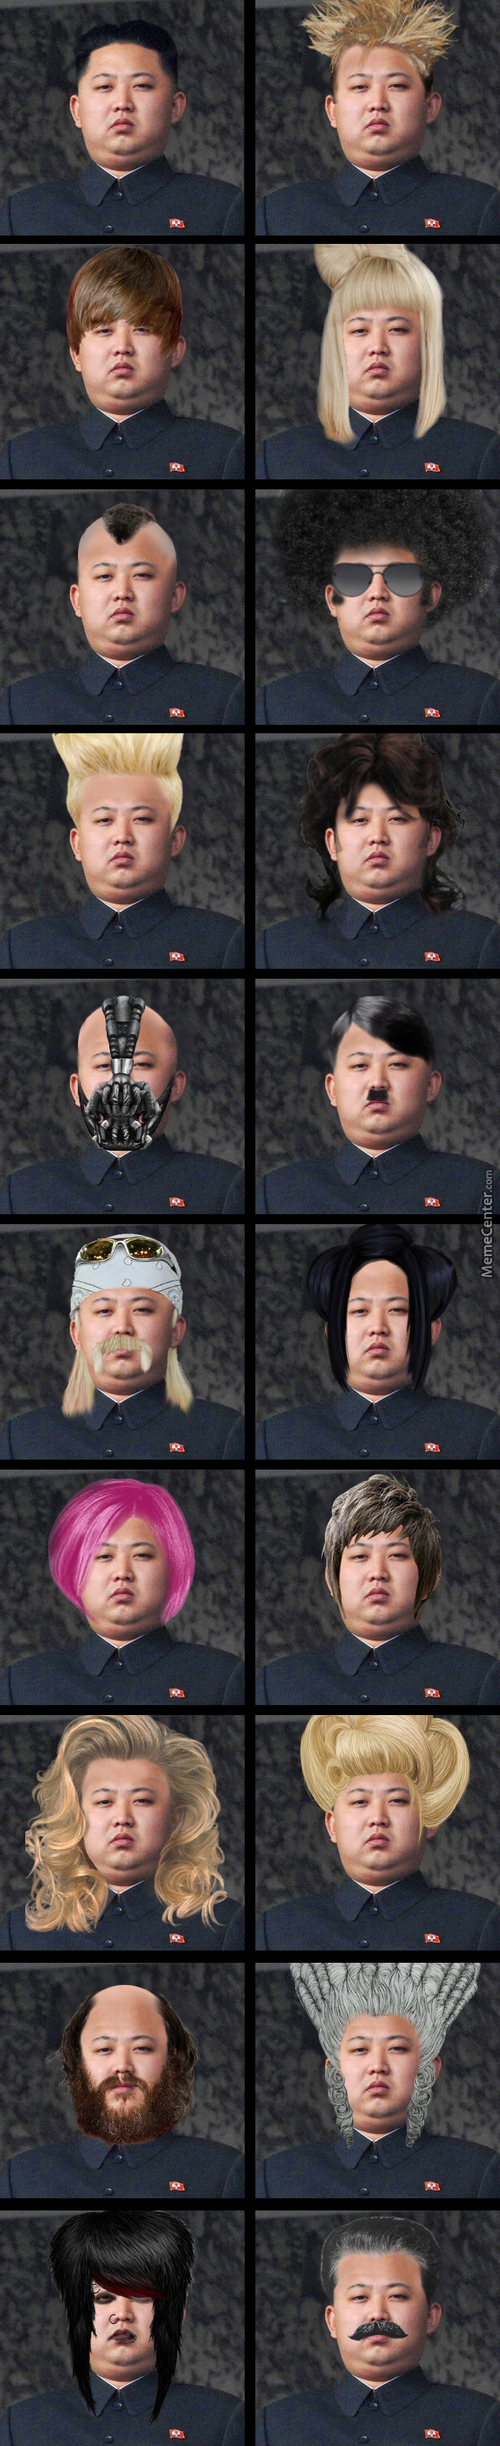 Kim Tries Different Hairstyles.some Users Are Gonna Take One Of Those And Probably Use Them As A Profile Avatar